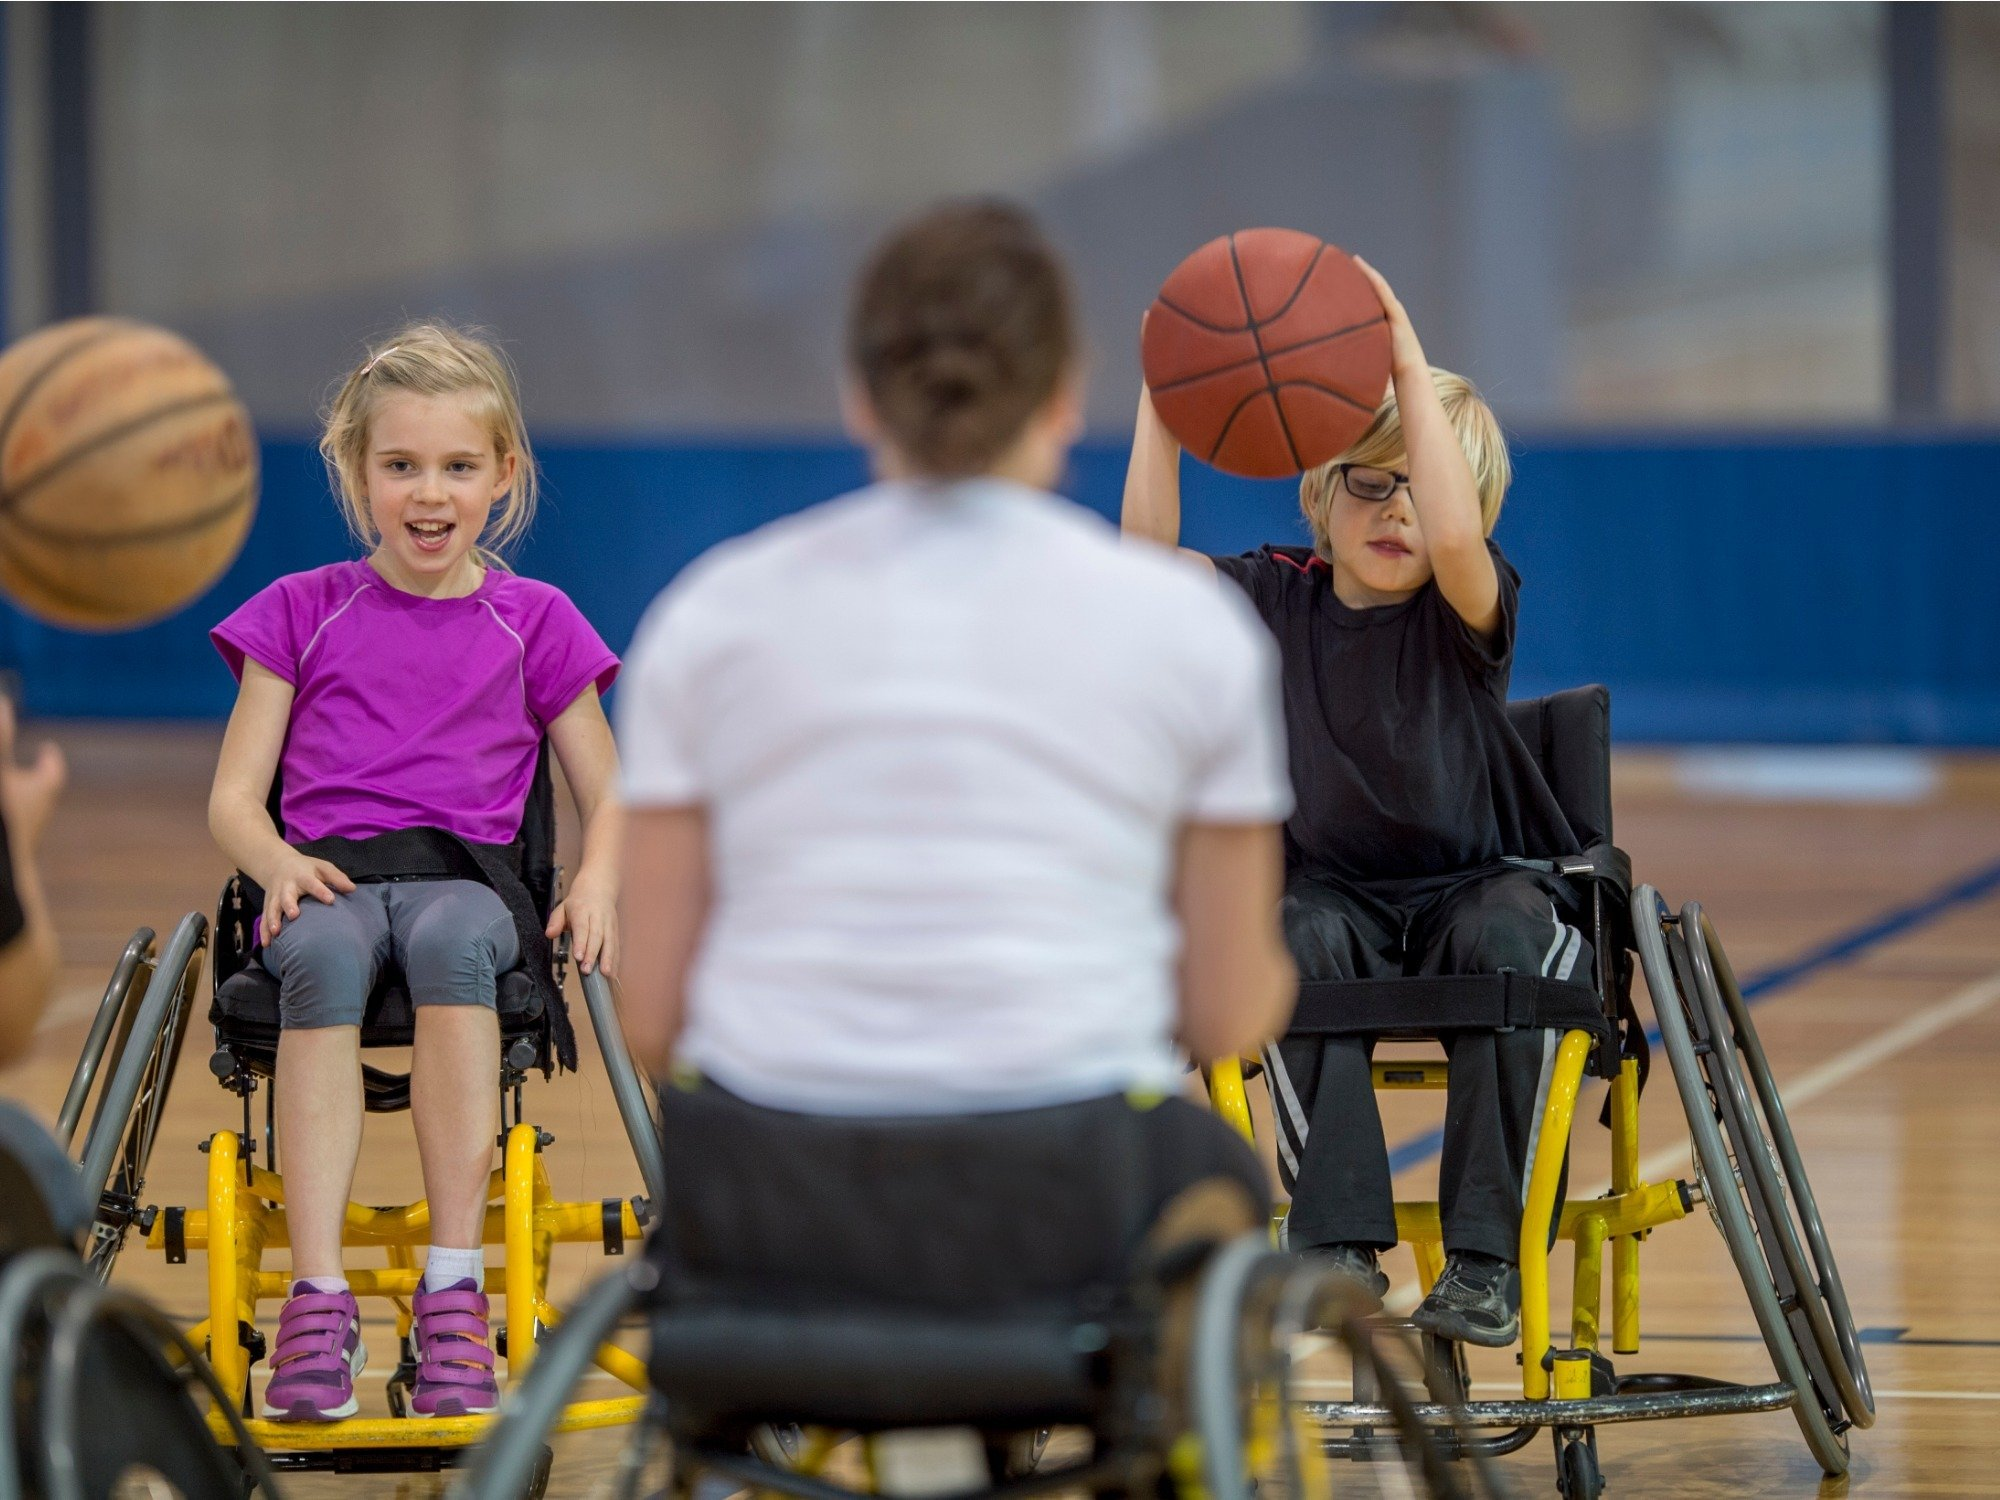 https://www.agedcareguide.com.au/assets/news/articles/handicap-people-dribbling-a-basketball-picture-id497895006.jpg